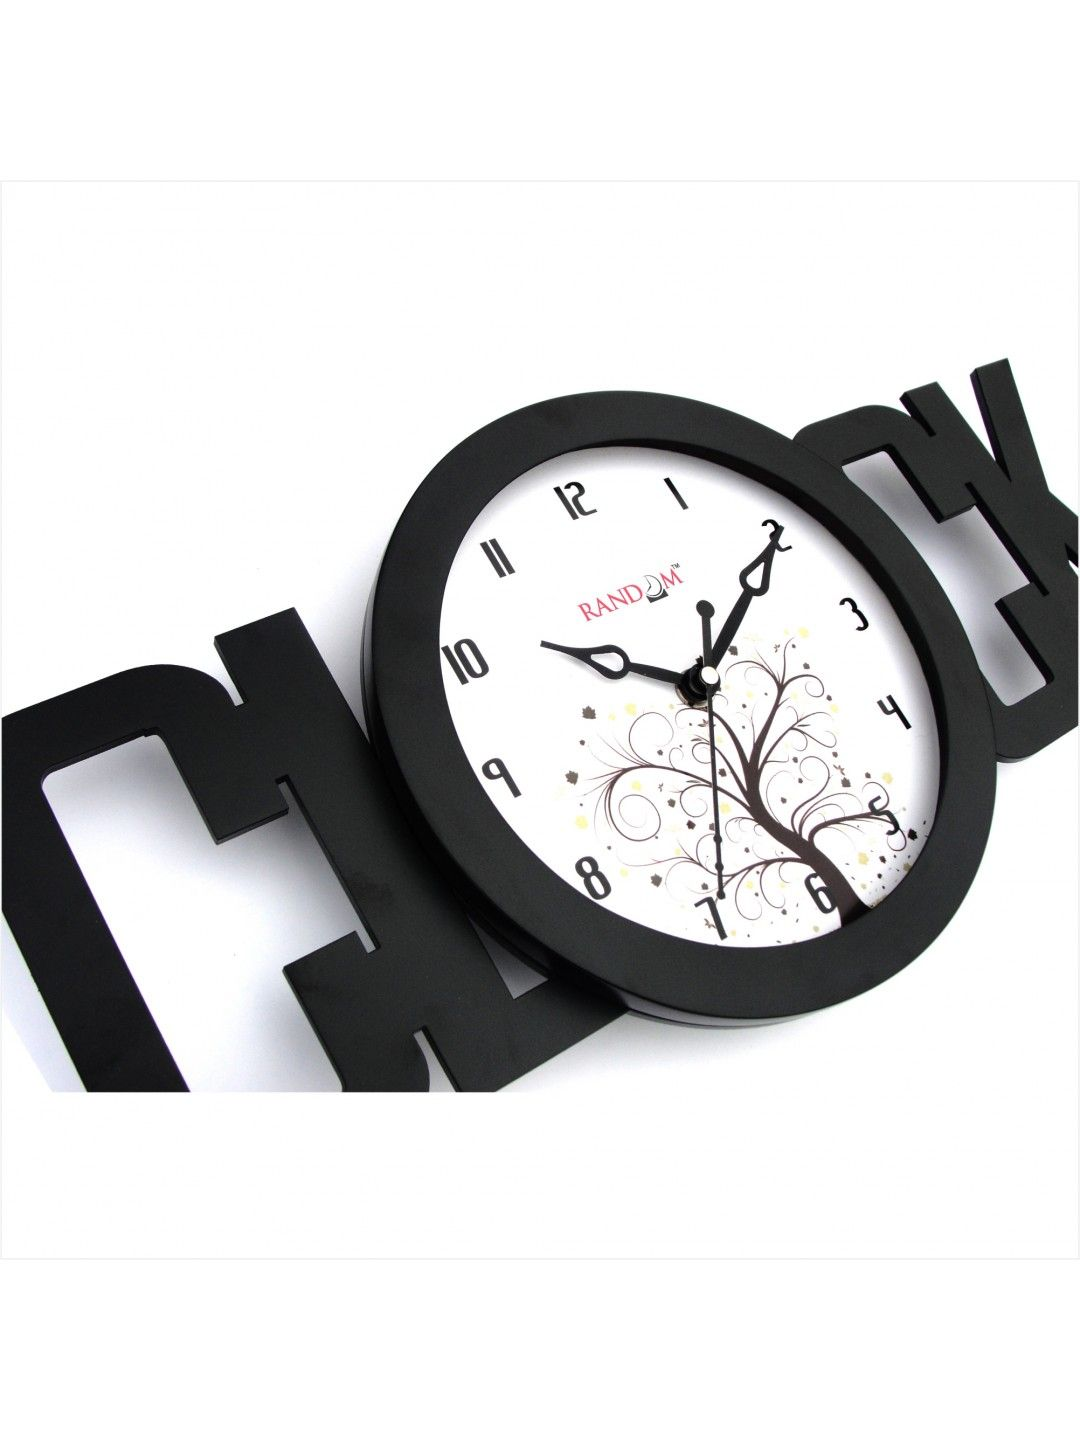 Buy designer black analog wall clock buy online designer black buy designer black analog wall clock buy online designer black analog wall clock at best amipublicfo Image collections